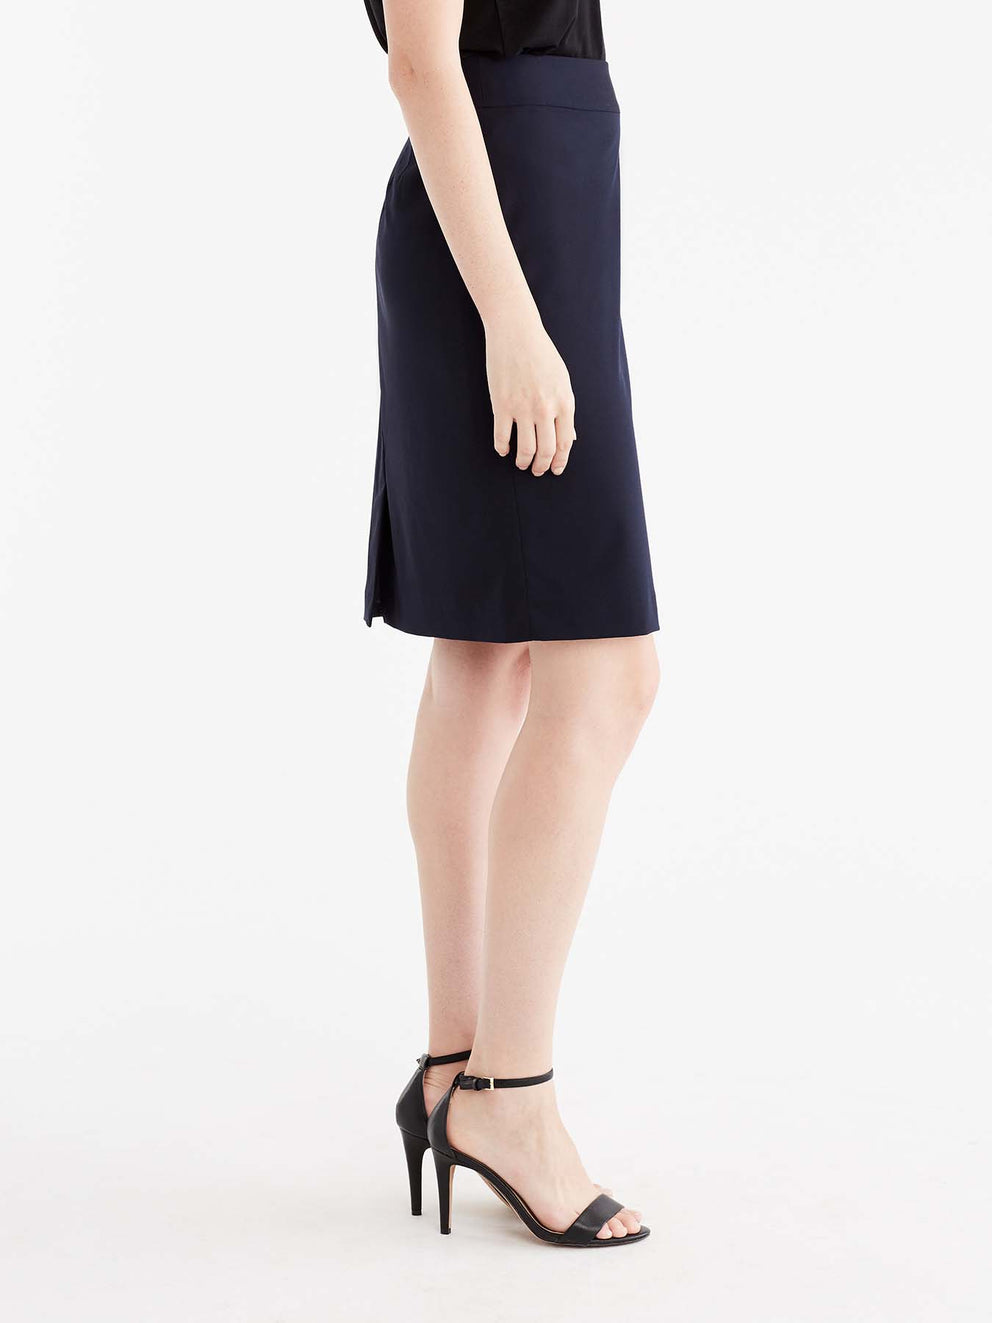 The Jones New York Washable Pencil Skirt in color Navy - Image Position 5